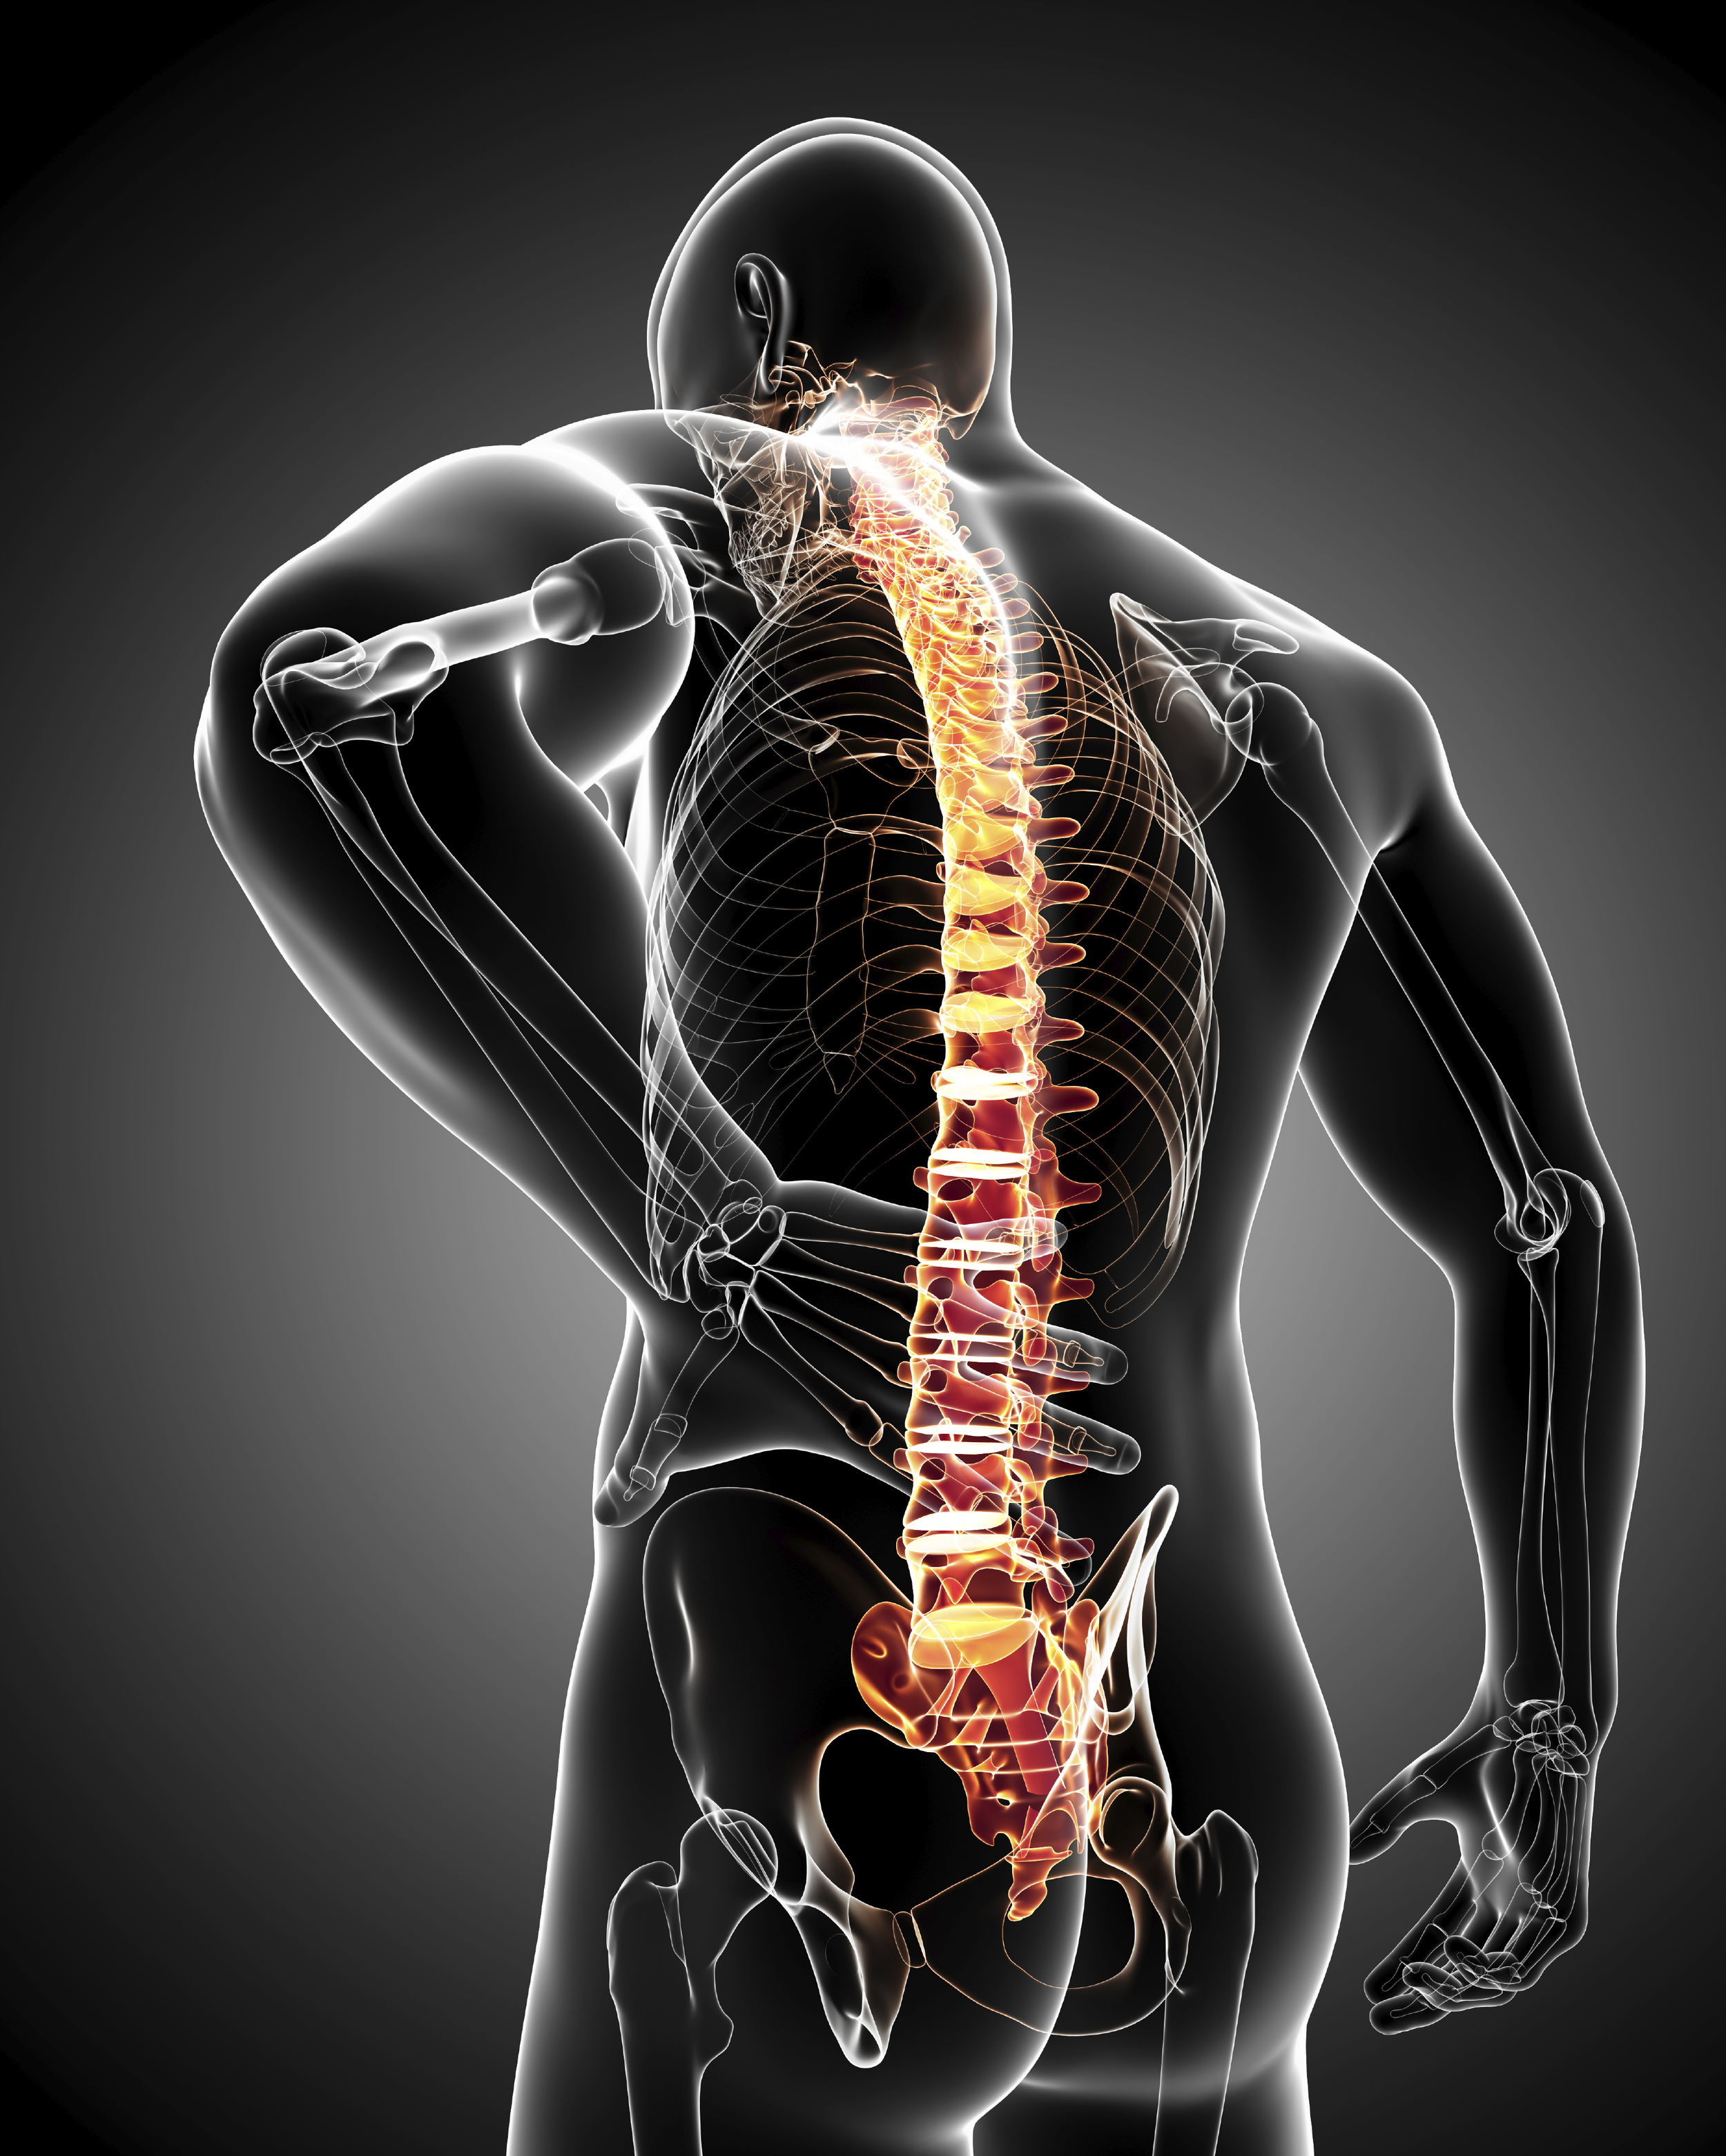 Back joints must move properly and evenly to ensure overall health